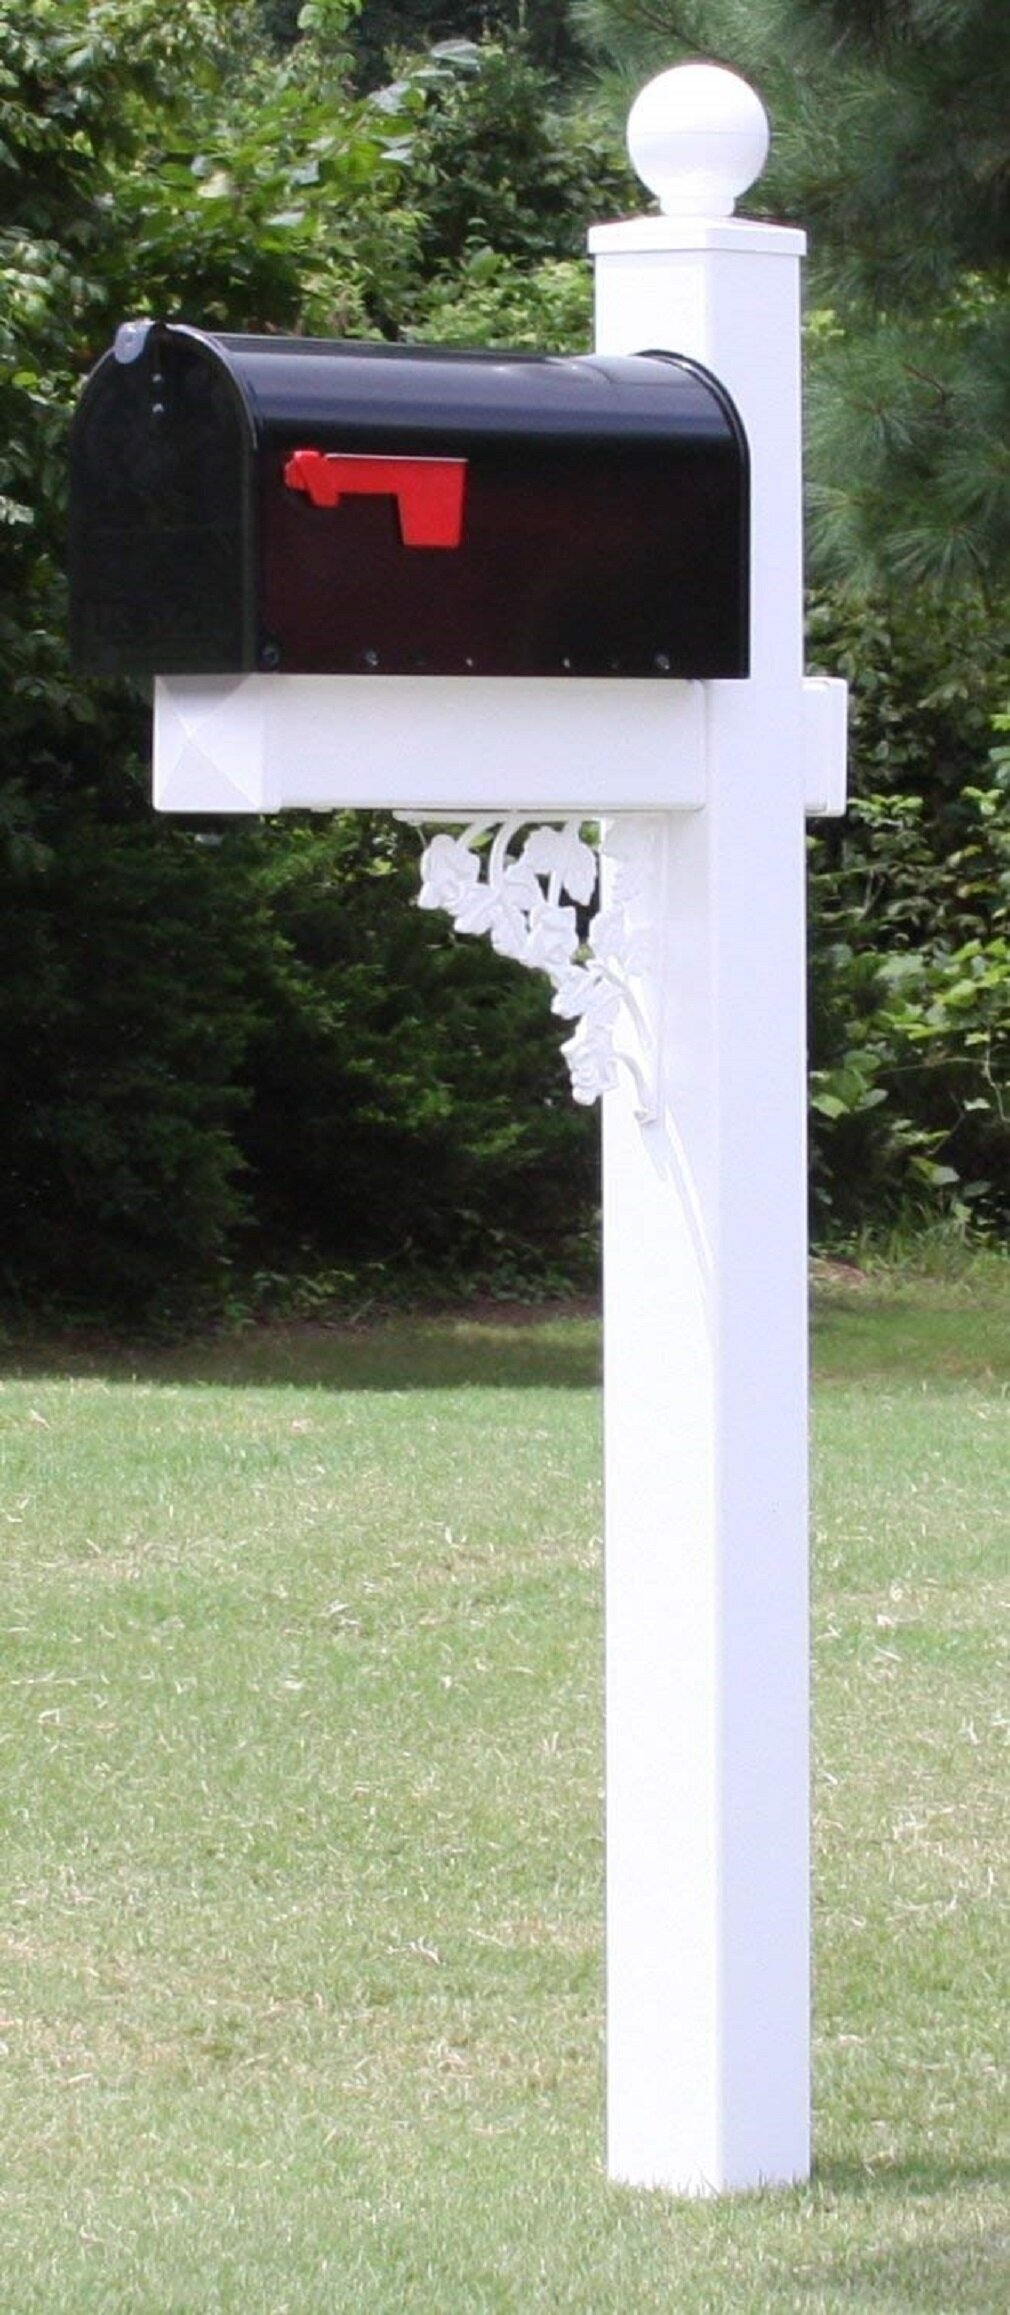 The Camden Mailbox with Post and Address Plate Included